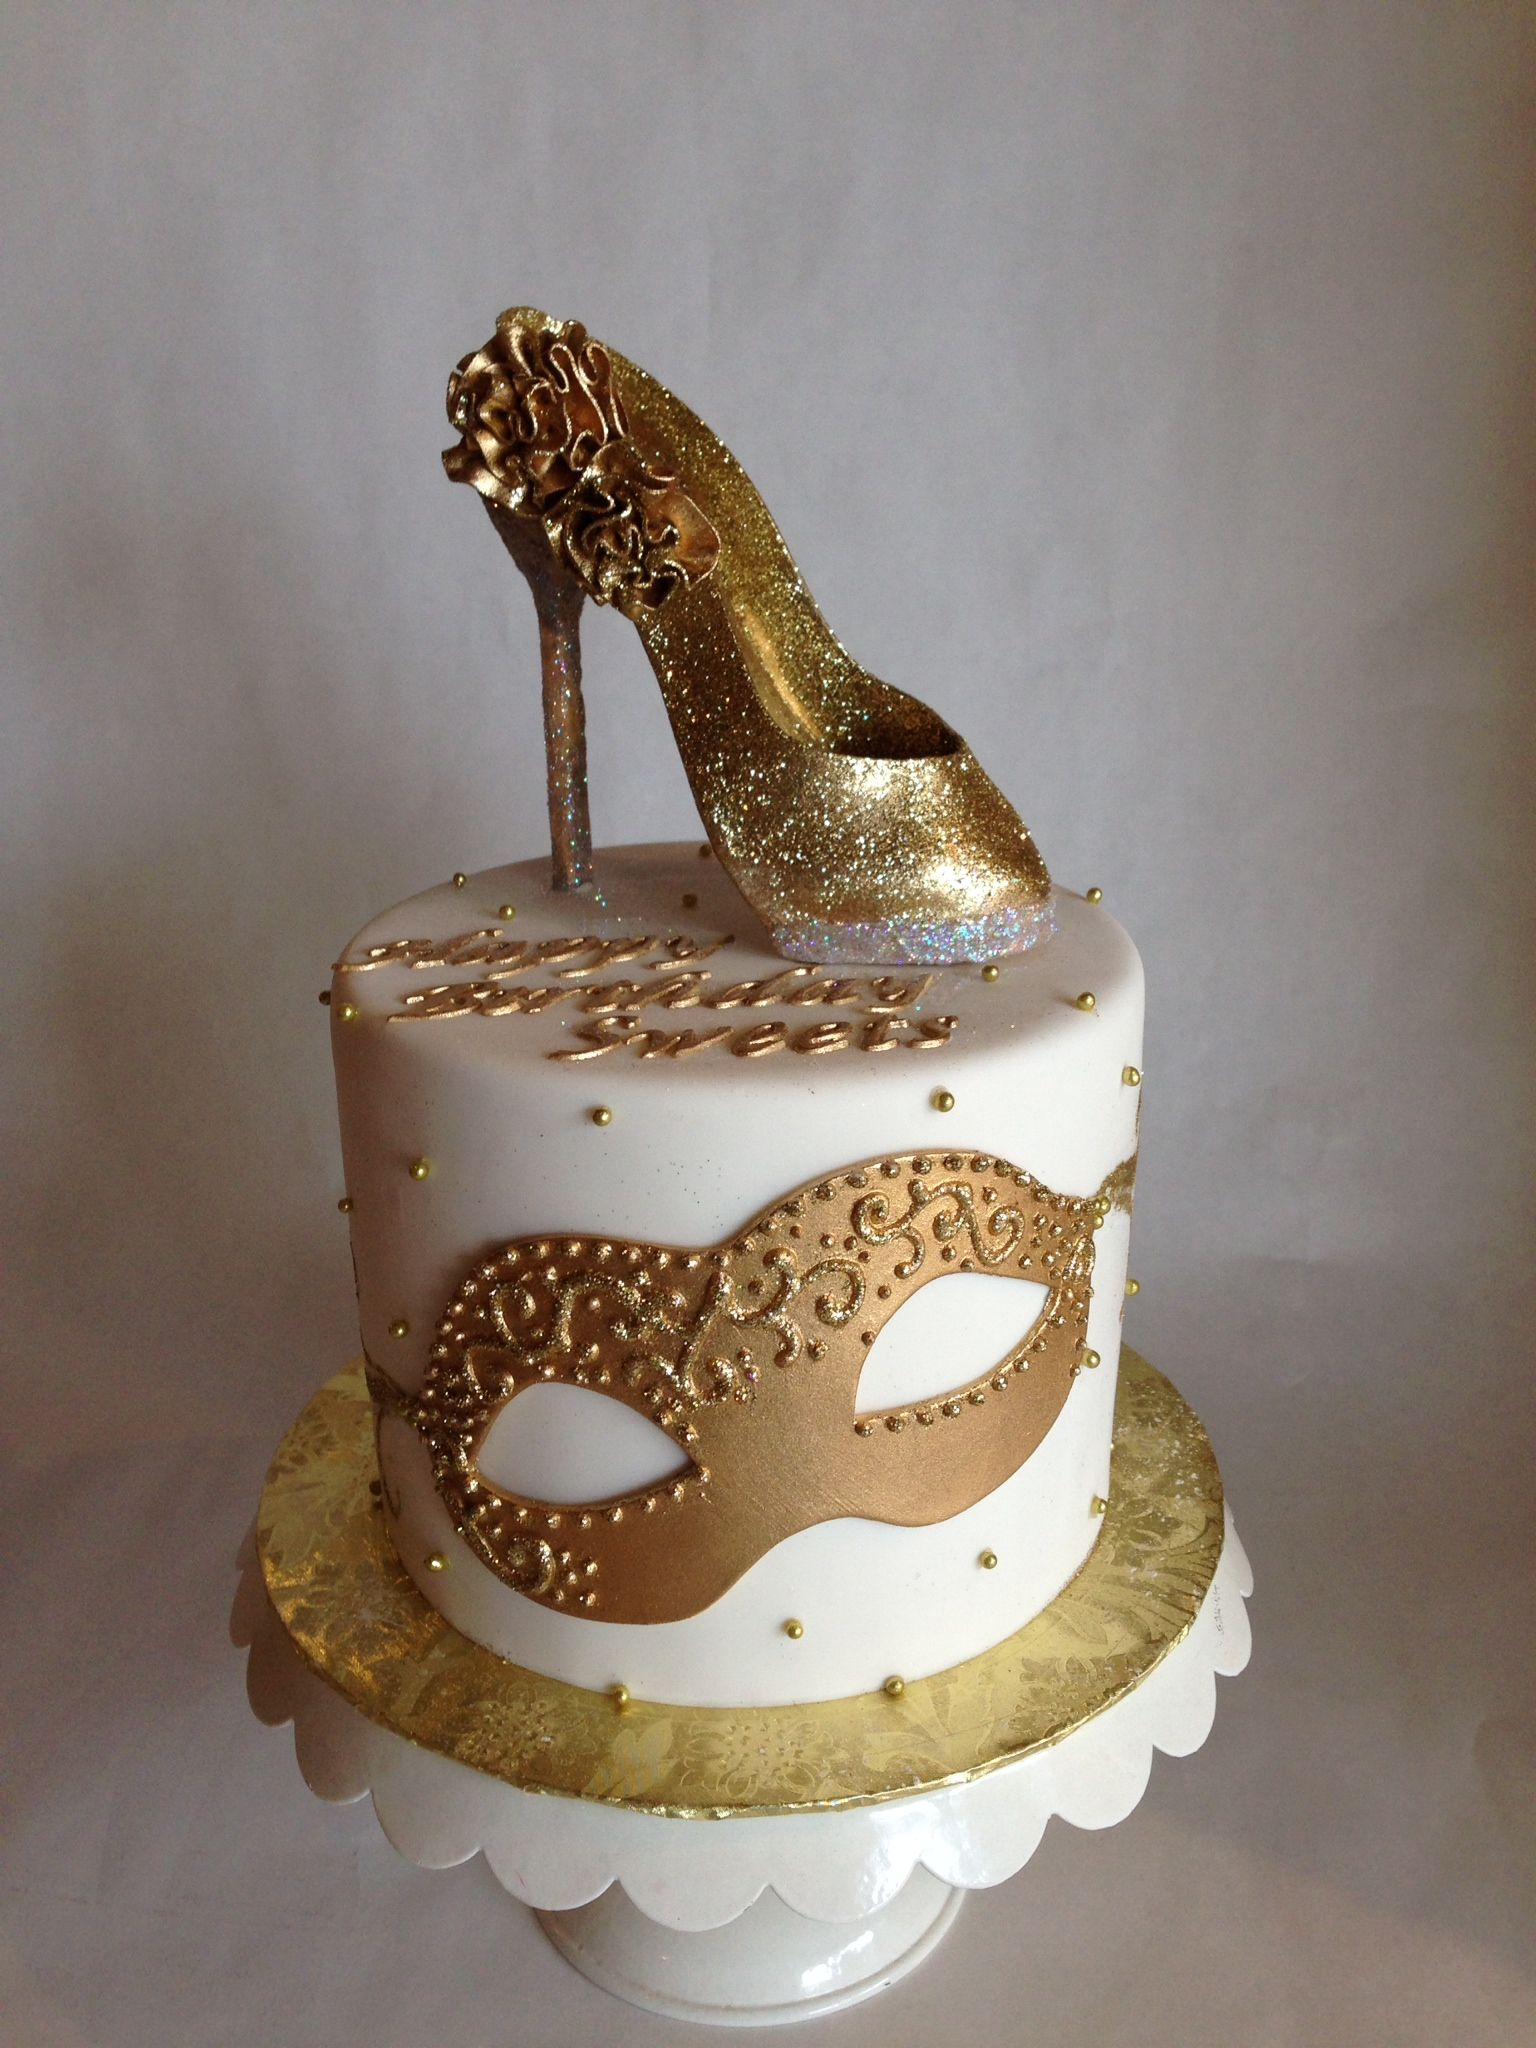 Birthday Cake Images Gold : Glam birthday cake gold high heel masquerade glitter ...